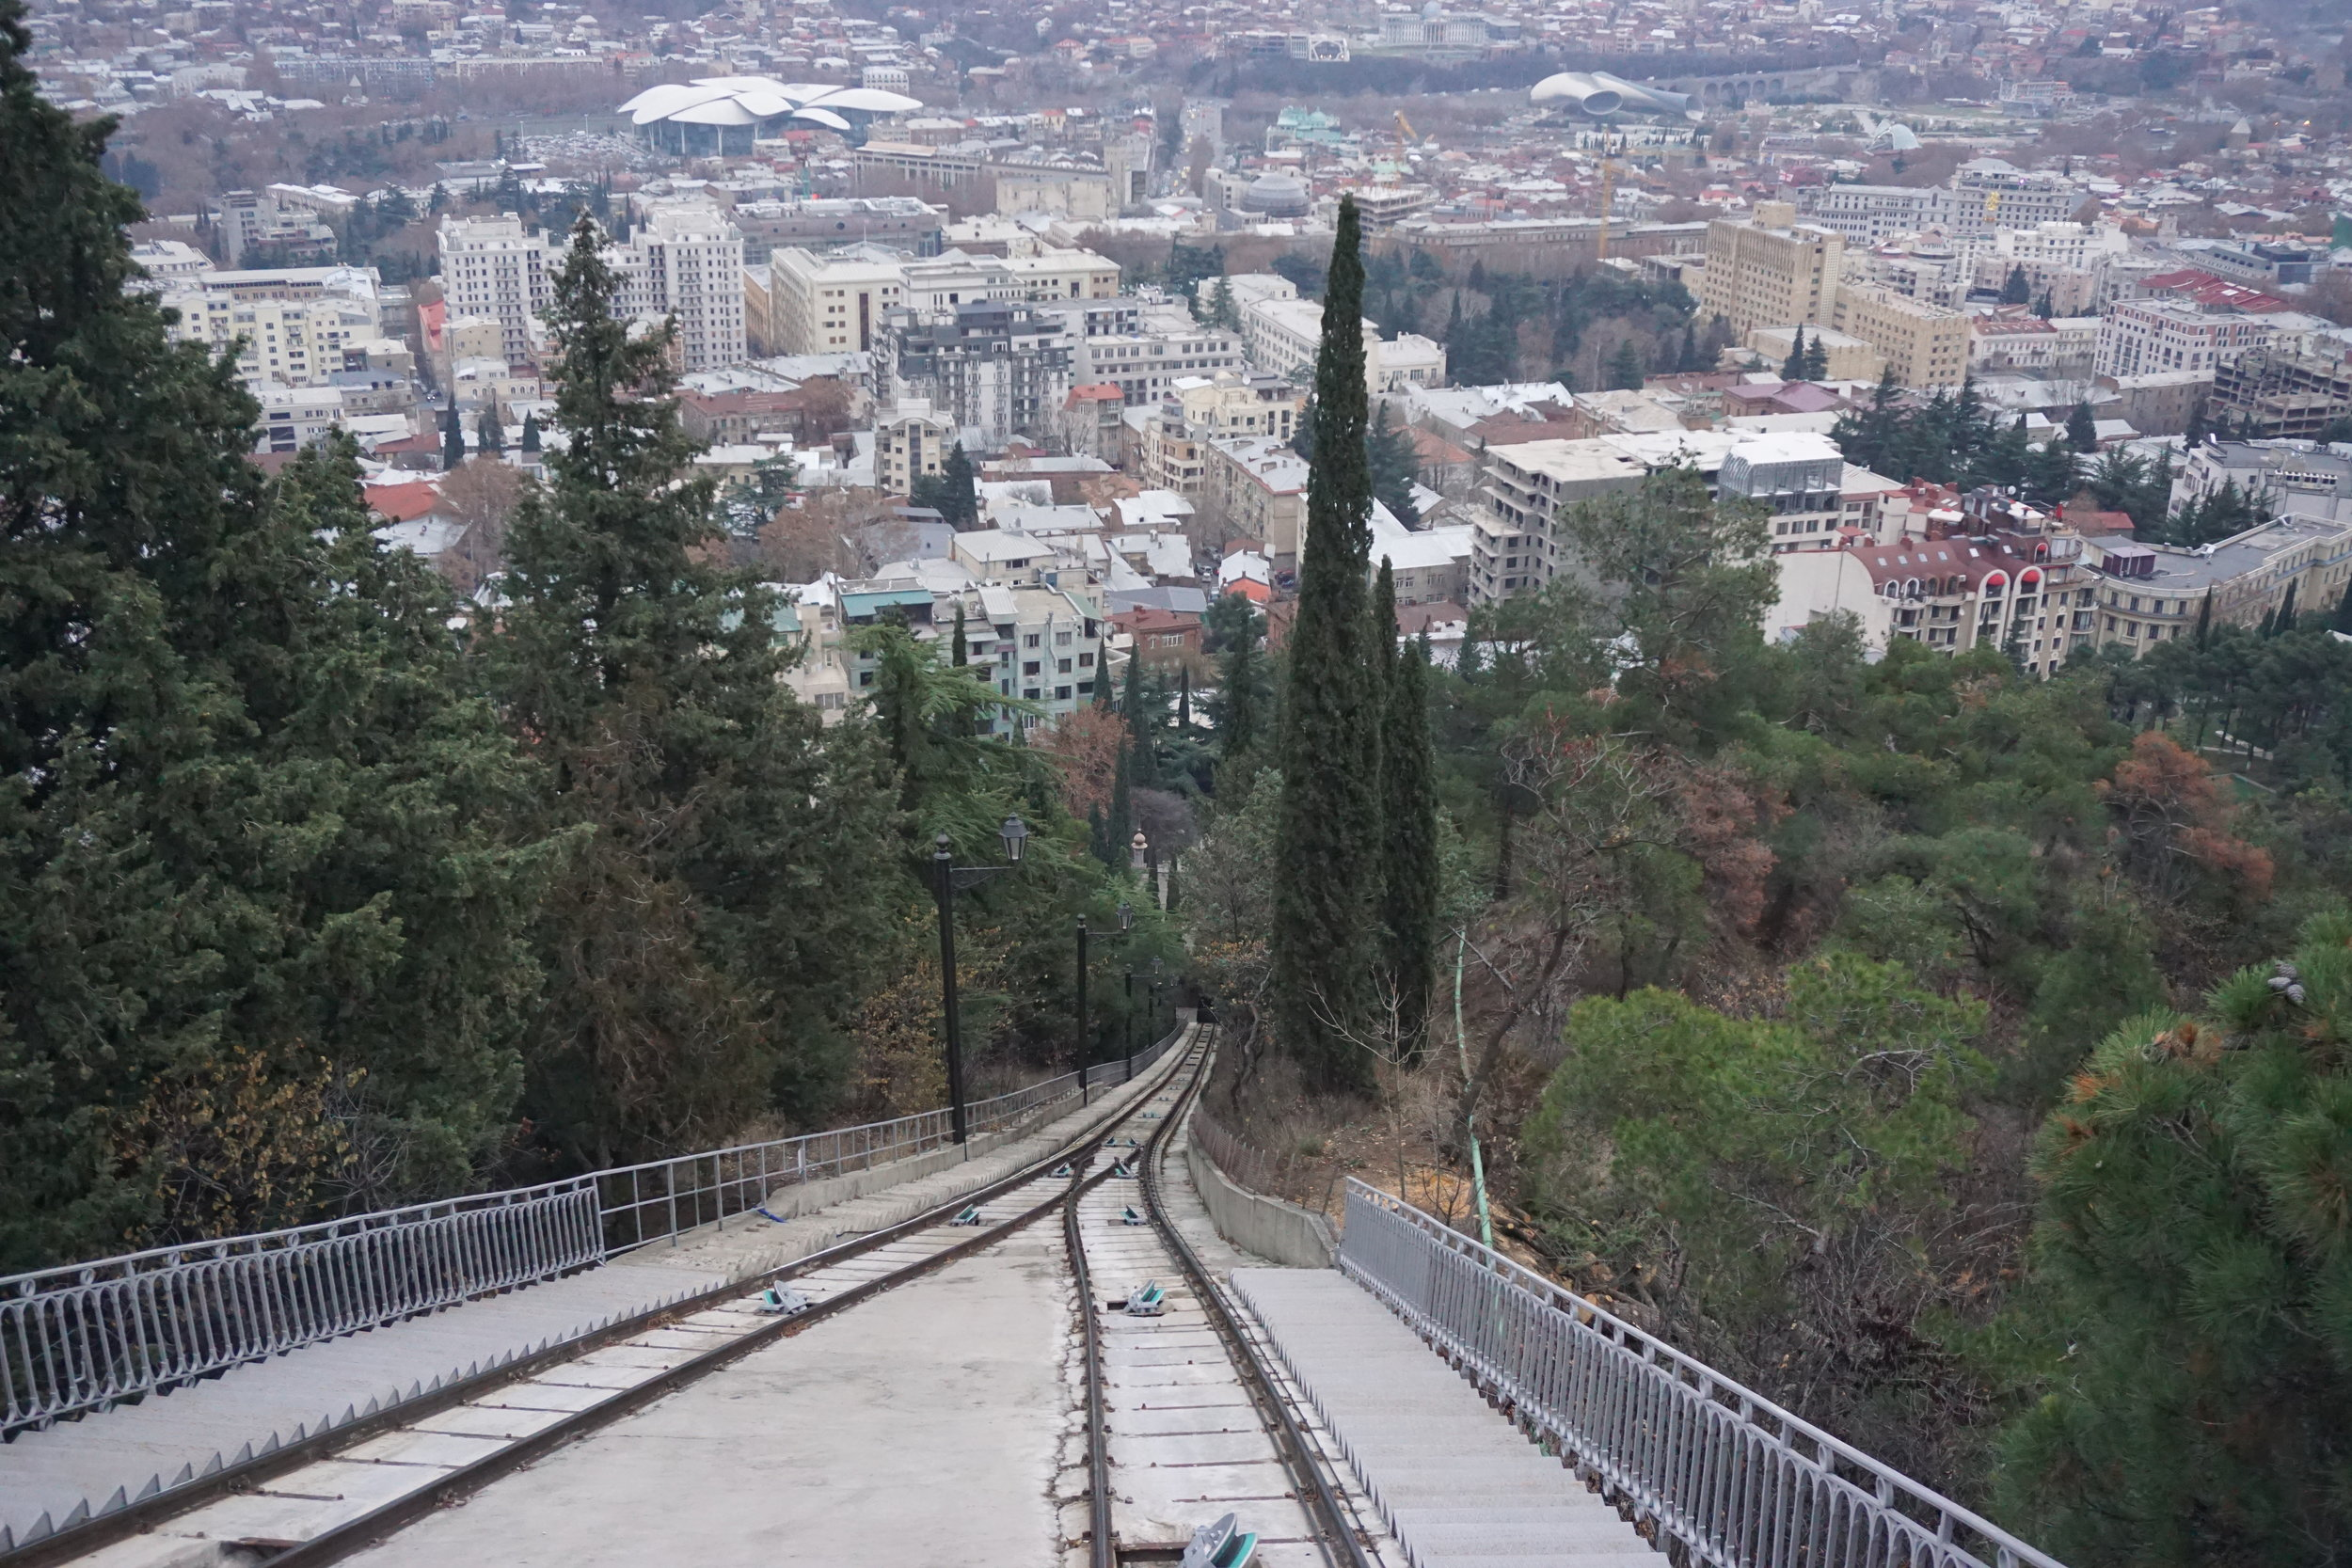 A bird's eye view of tbilisi from the train up to Mtasminda in Georgia